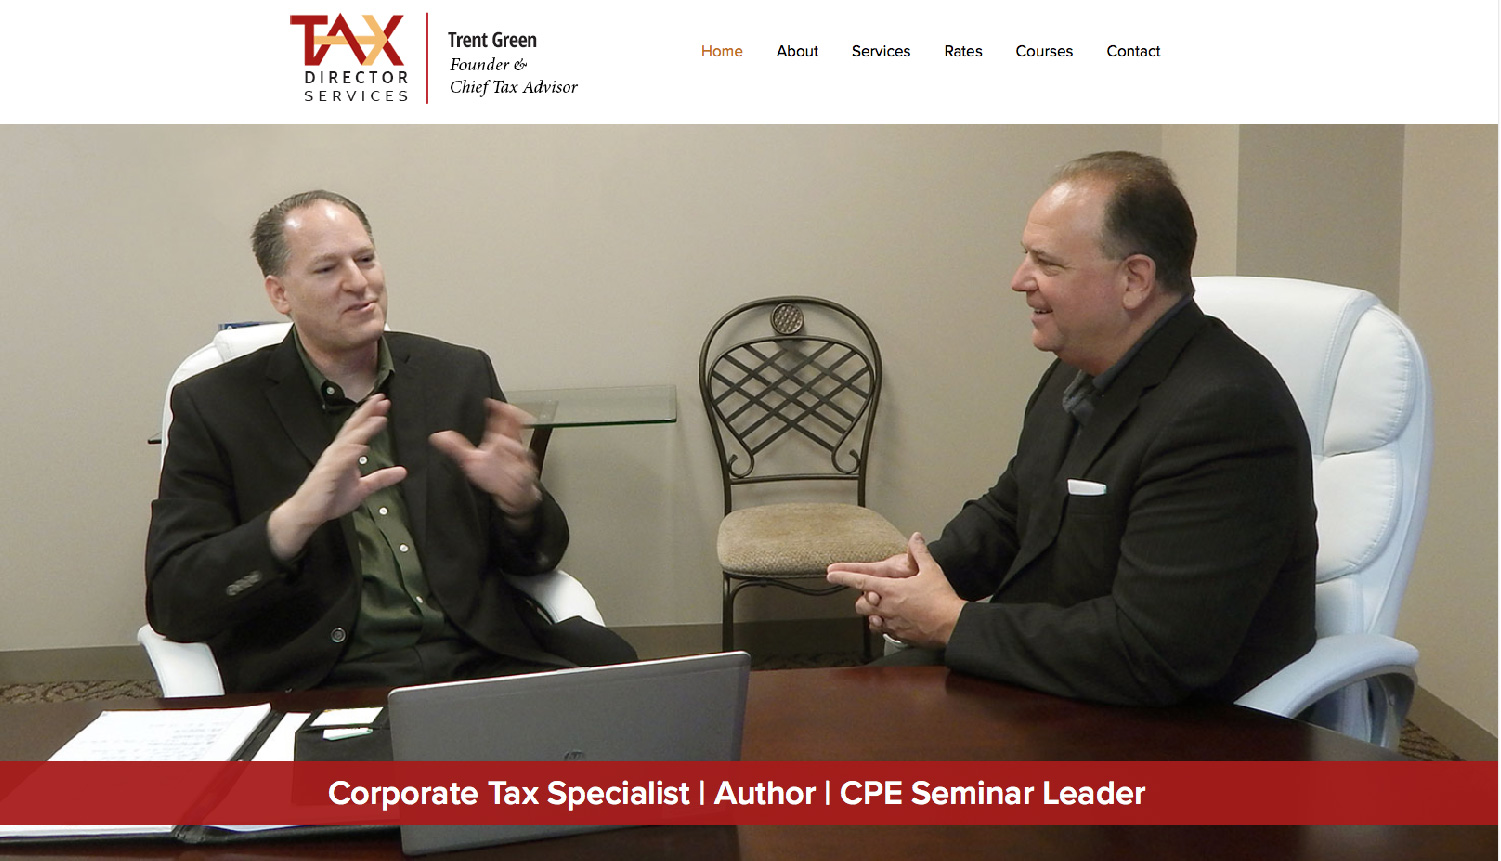 Tax Director Services